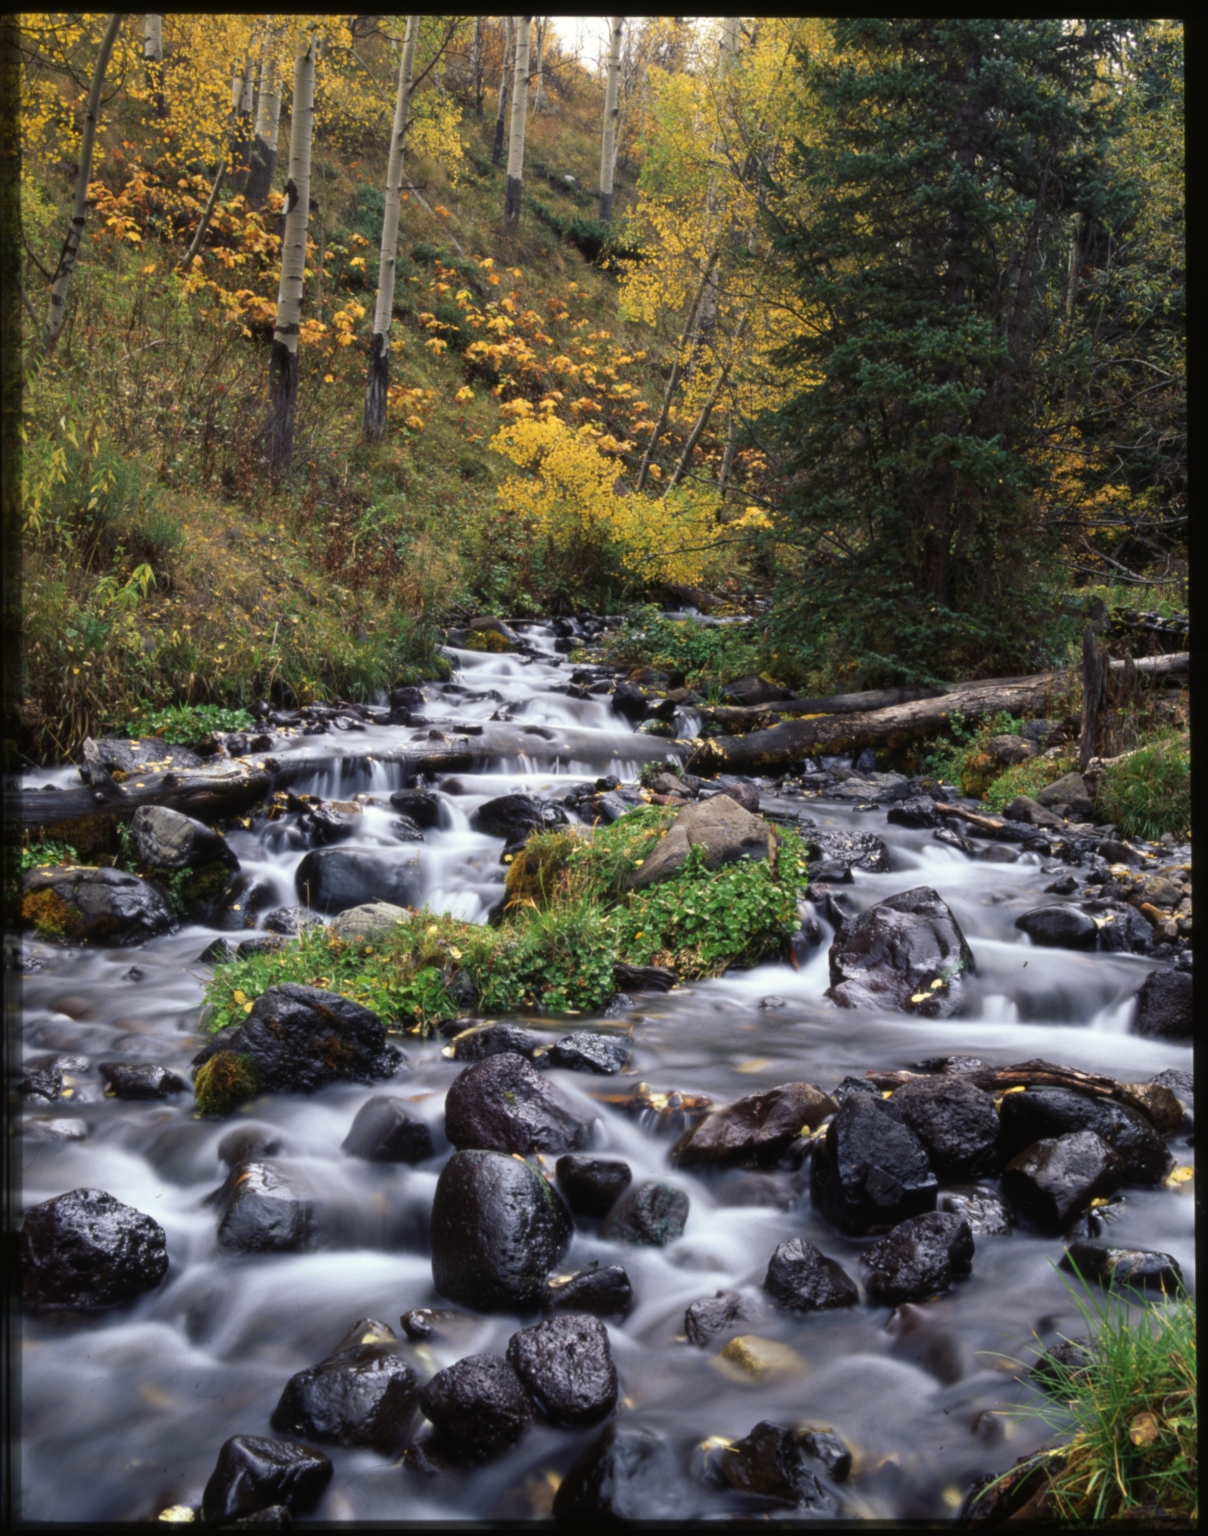 Creek in the Flat Tops Wilderness Area